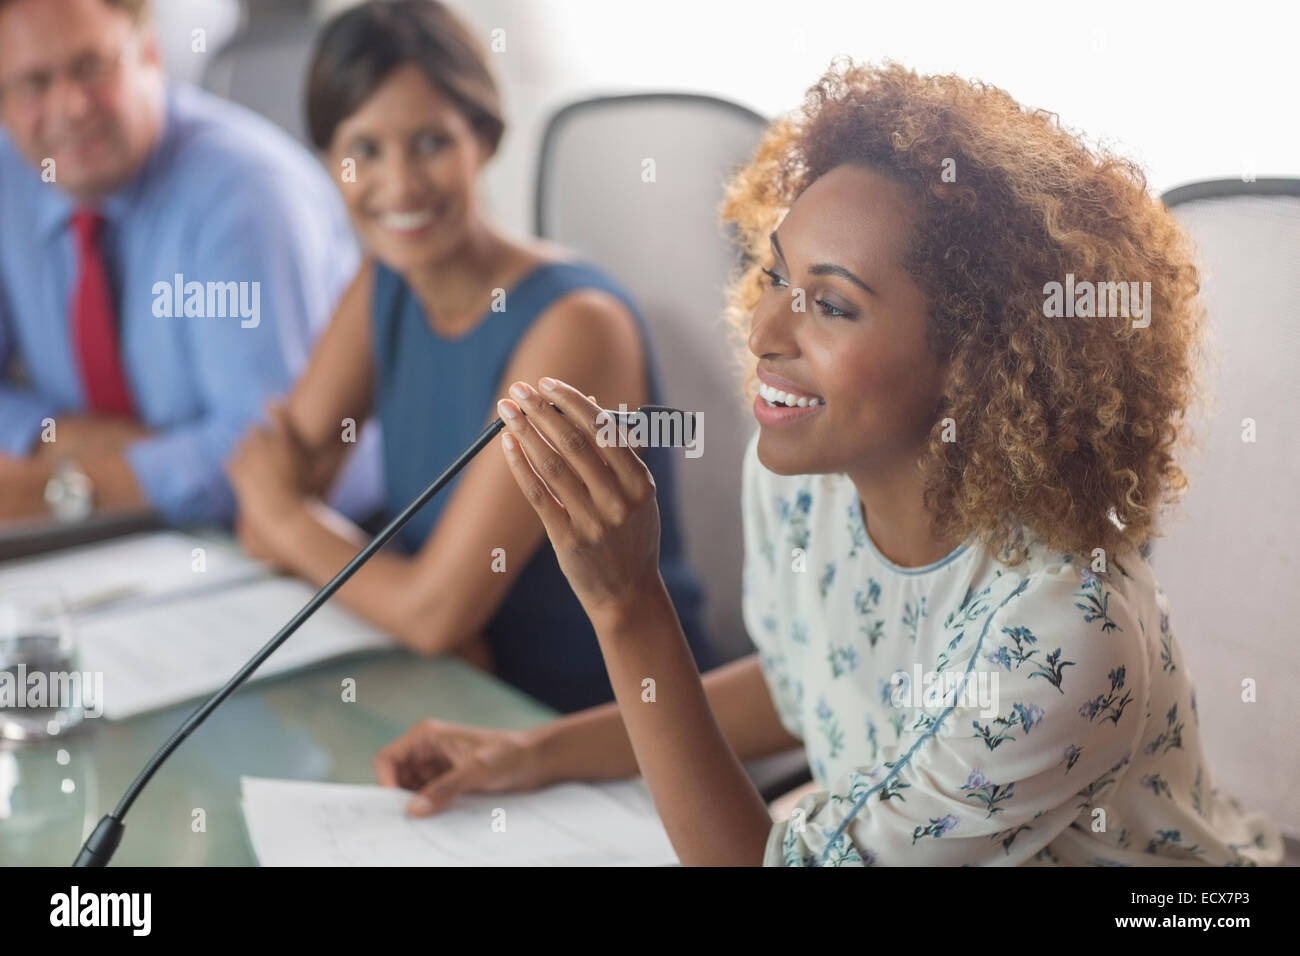 Beautiful woman sitting at conference table talking into microphone - Stock Image